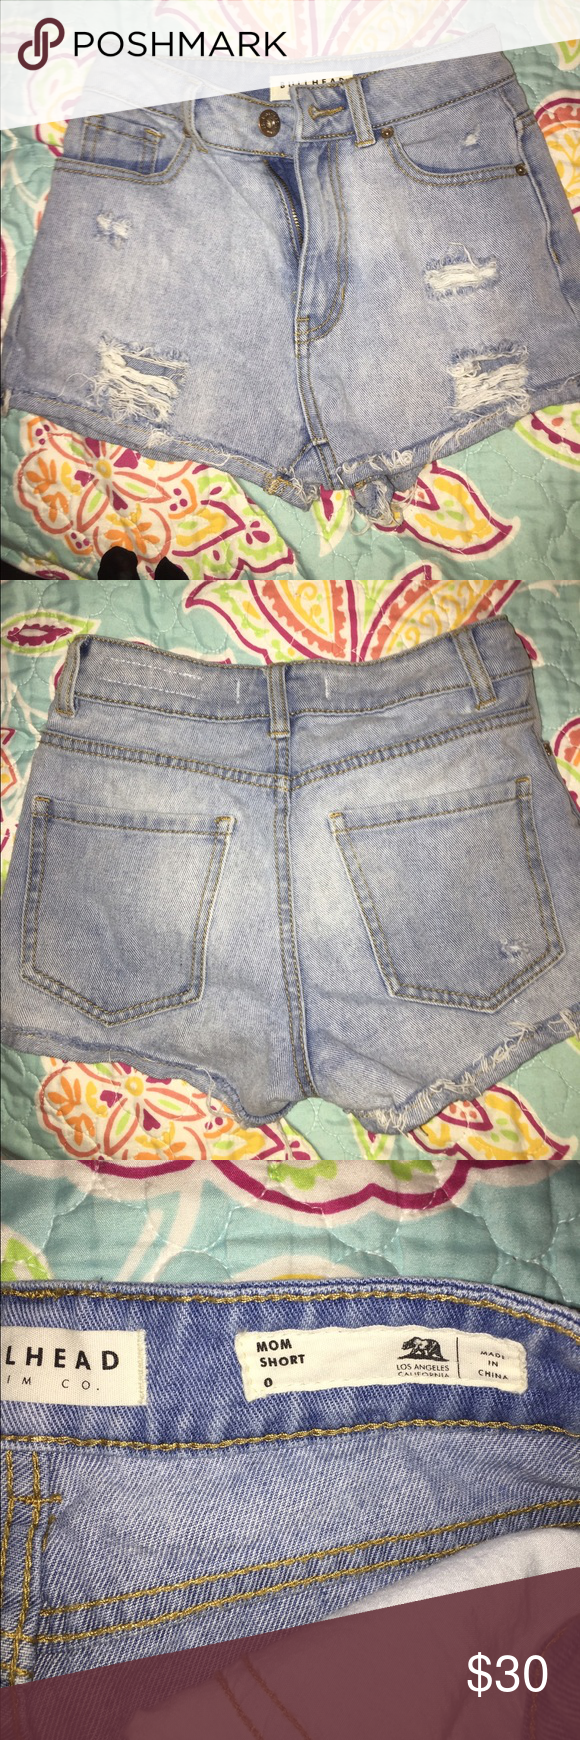 Women's pacsun shorts size 0 These are brand new shorts, I wore them once. They are a women's size 0, light wash destroyed shorts. Very cute for summer, just have too many pairs :) PacSun Shorts Jean Shorts